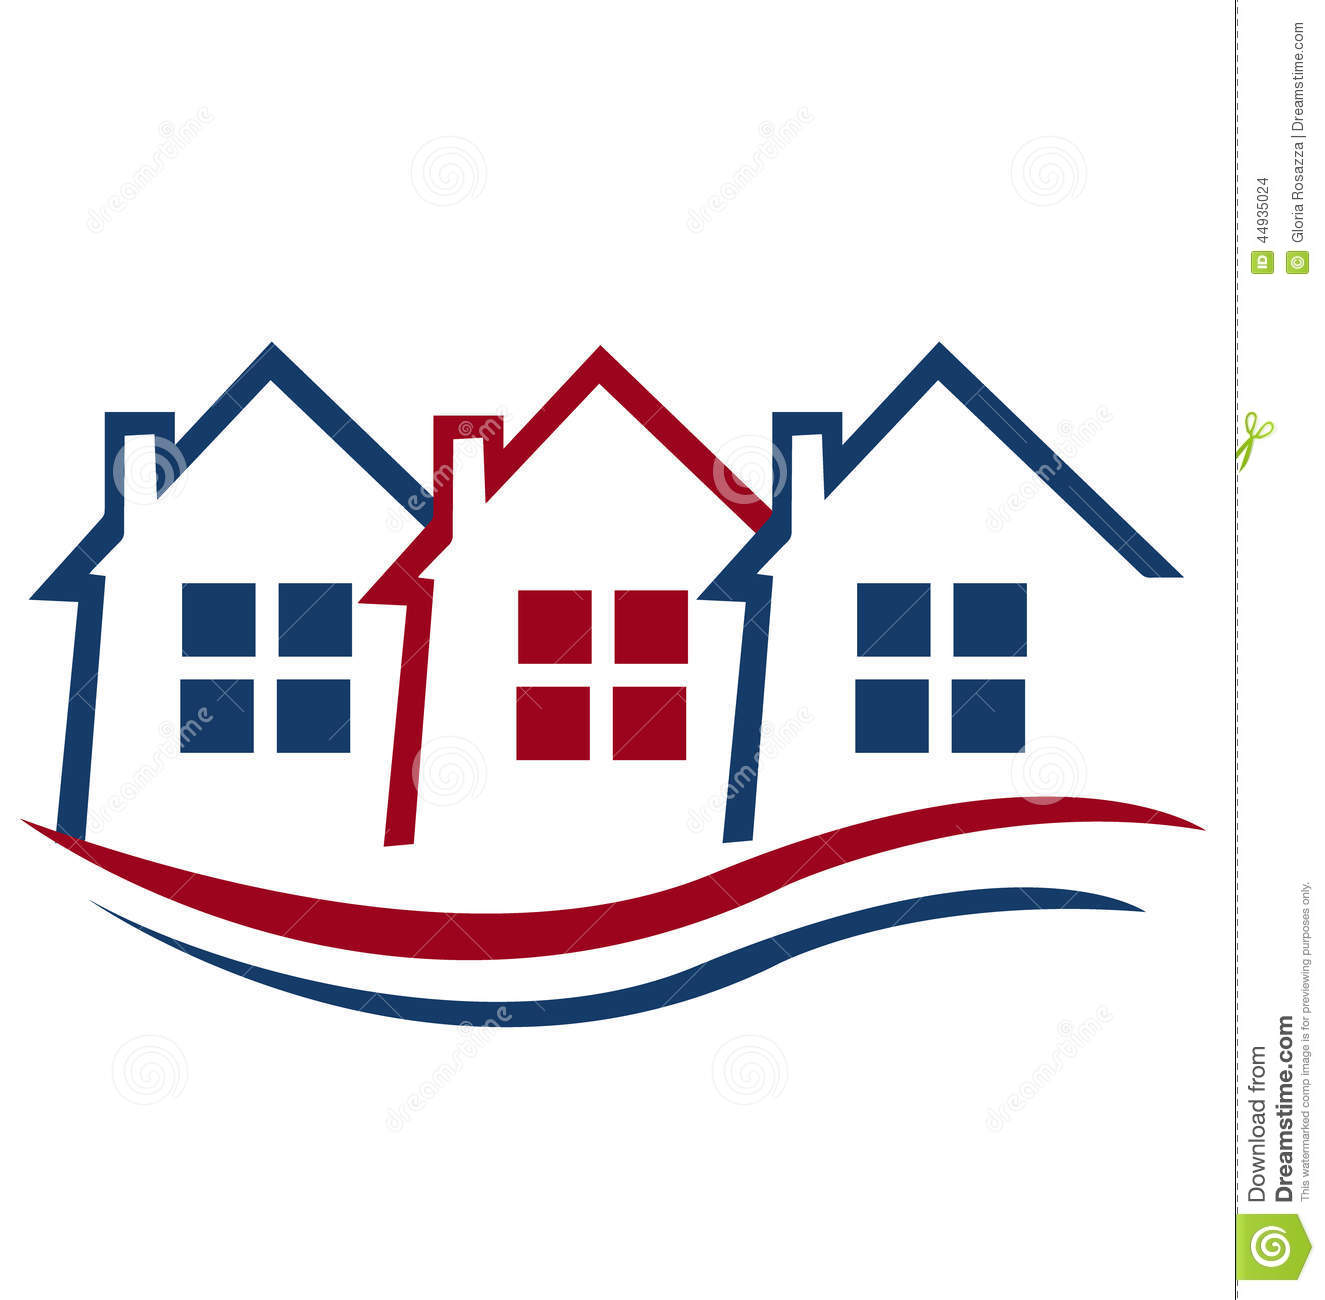 Houses For Real Estate Logo Stock Illustration - Image: 44935024